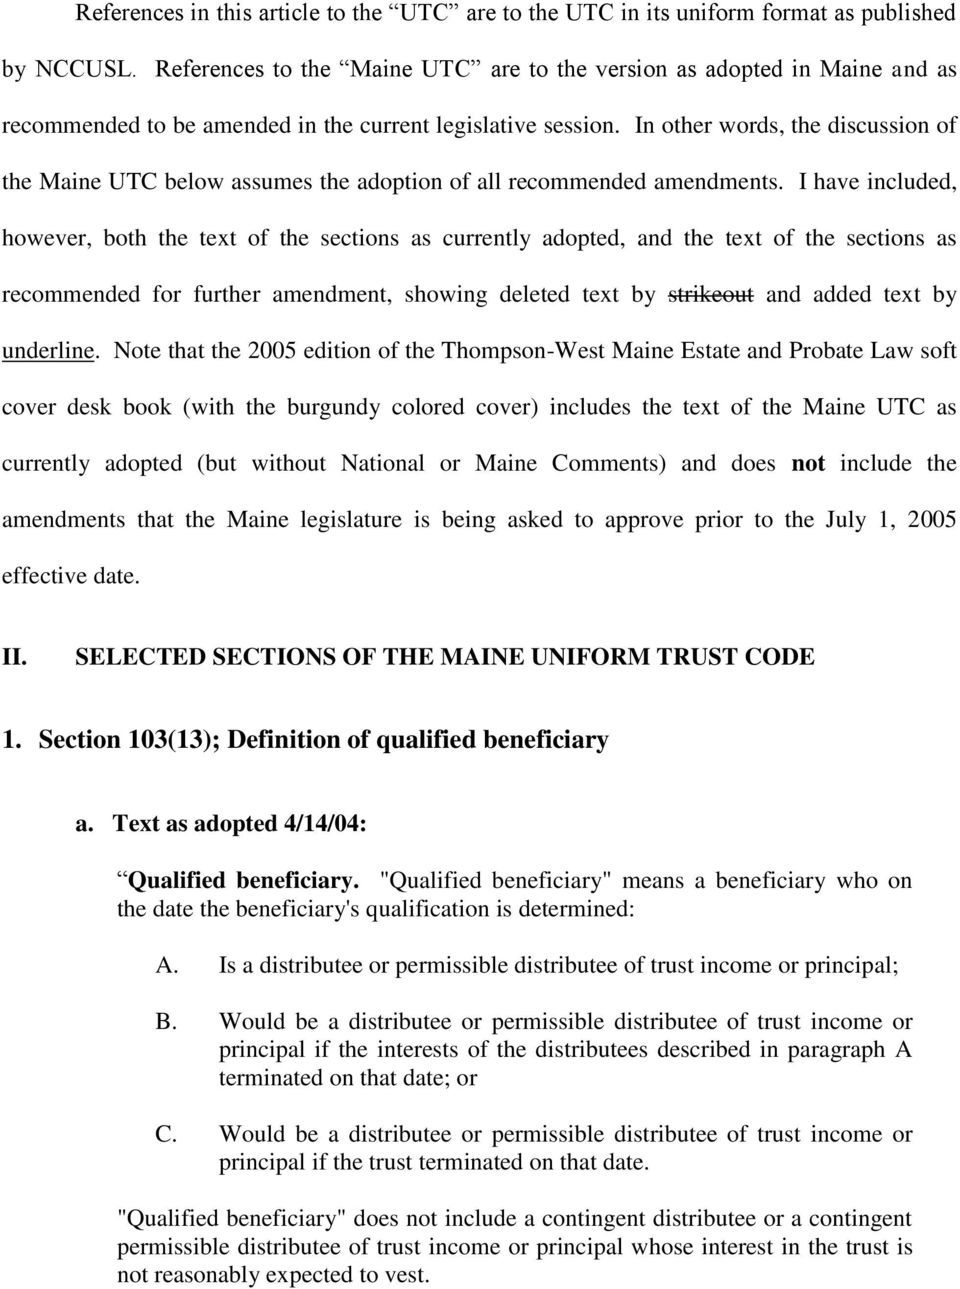 In other words, the discussion of the Maine UTC below assumes the adoption of all recommended amendments.